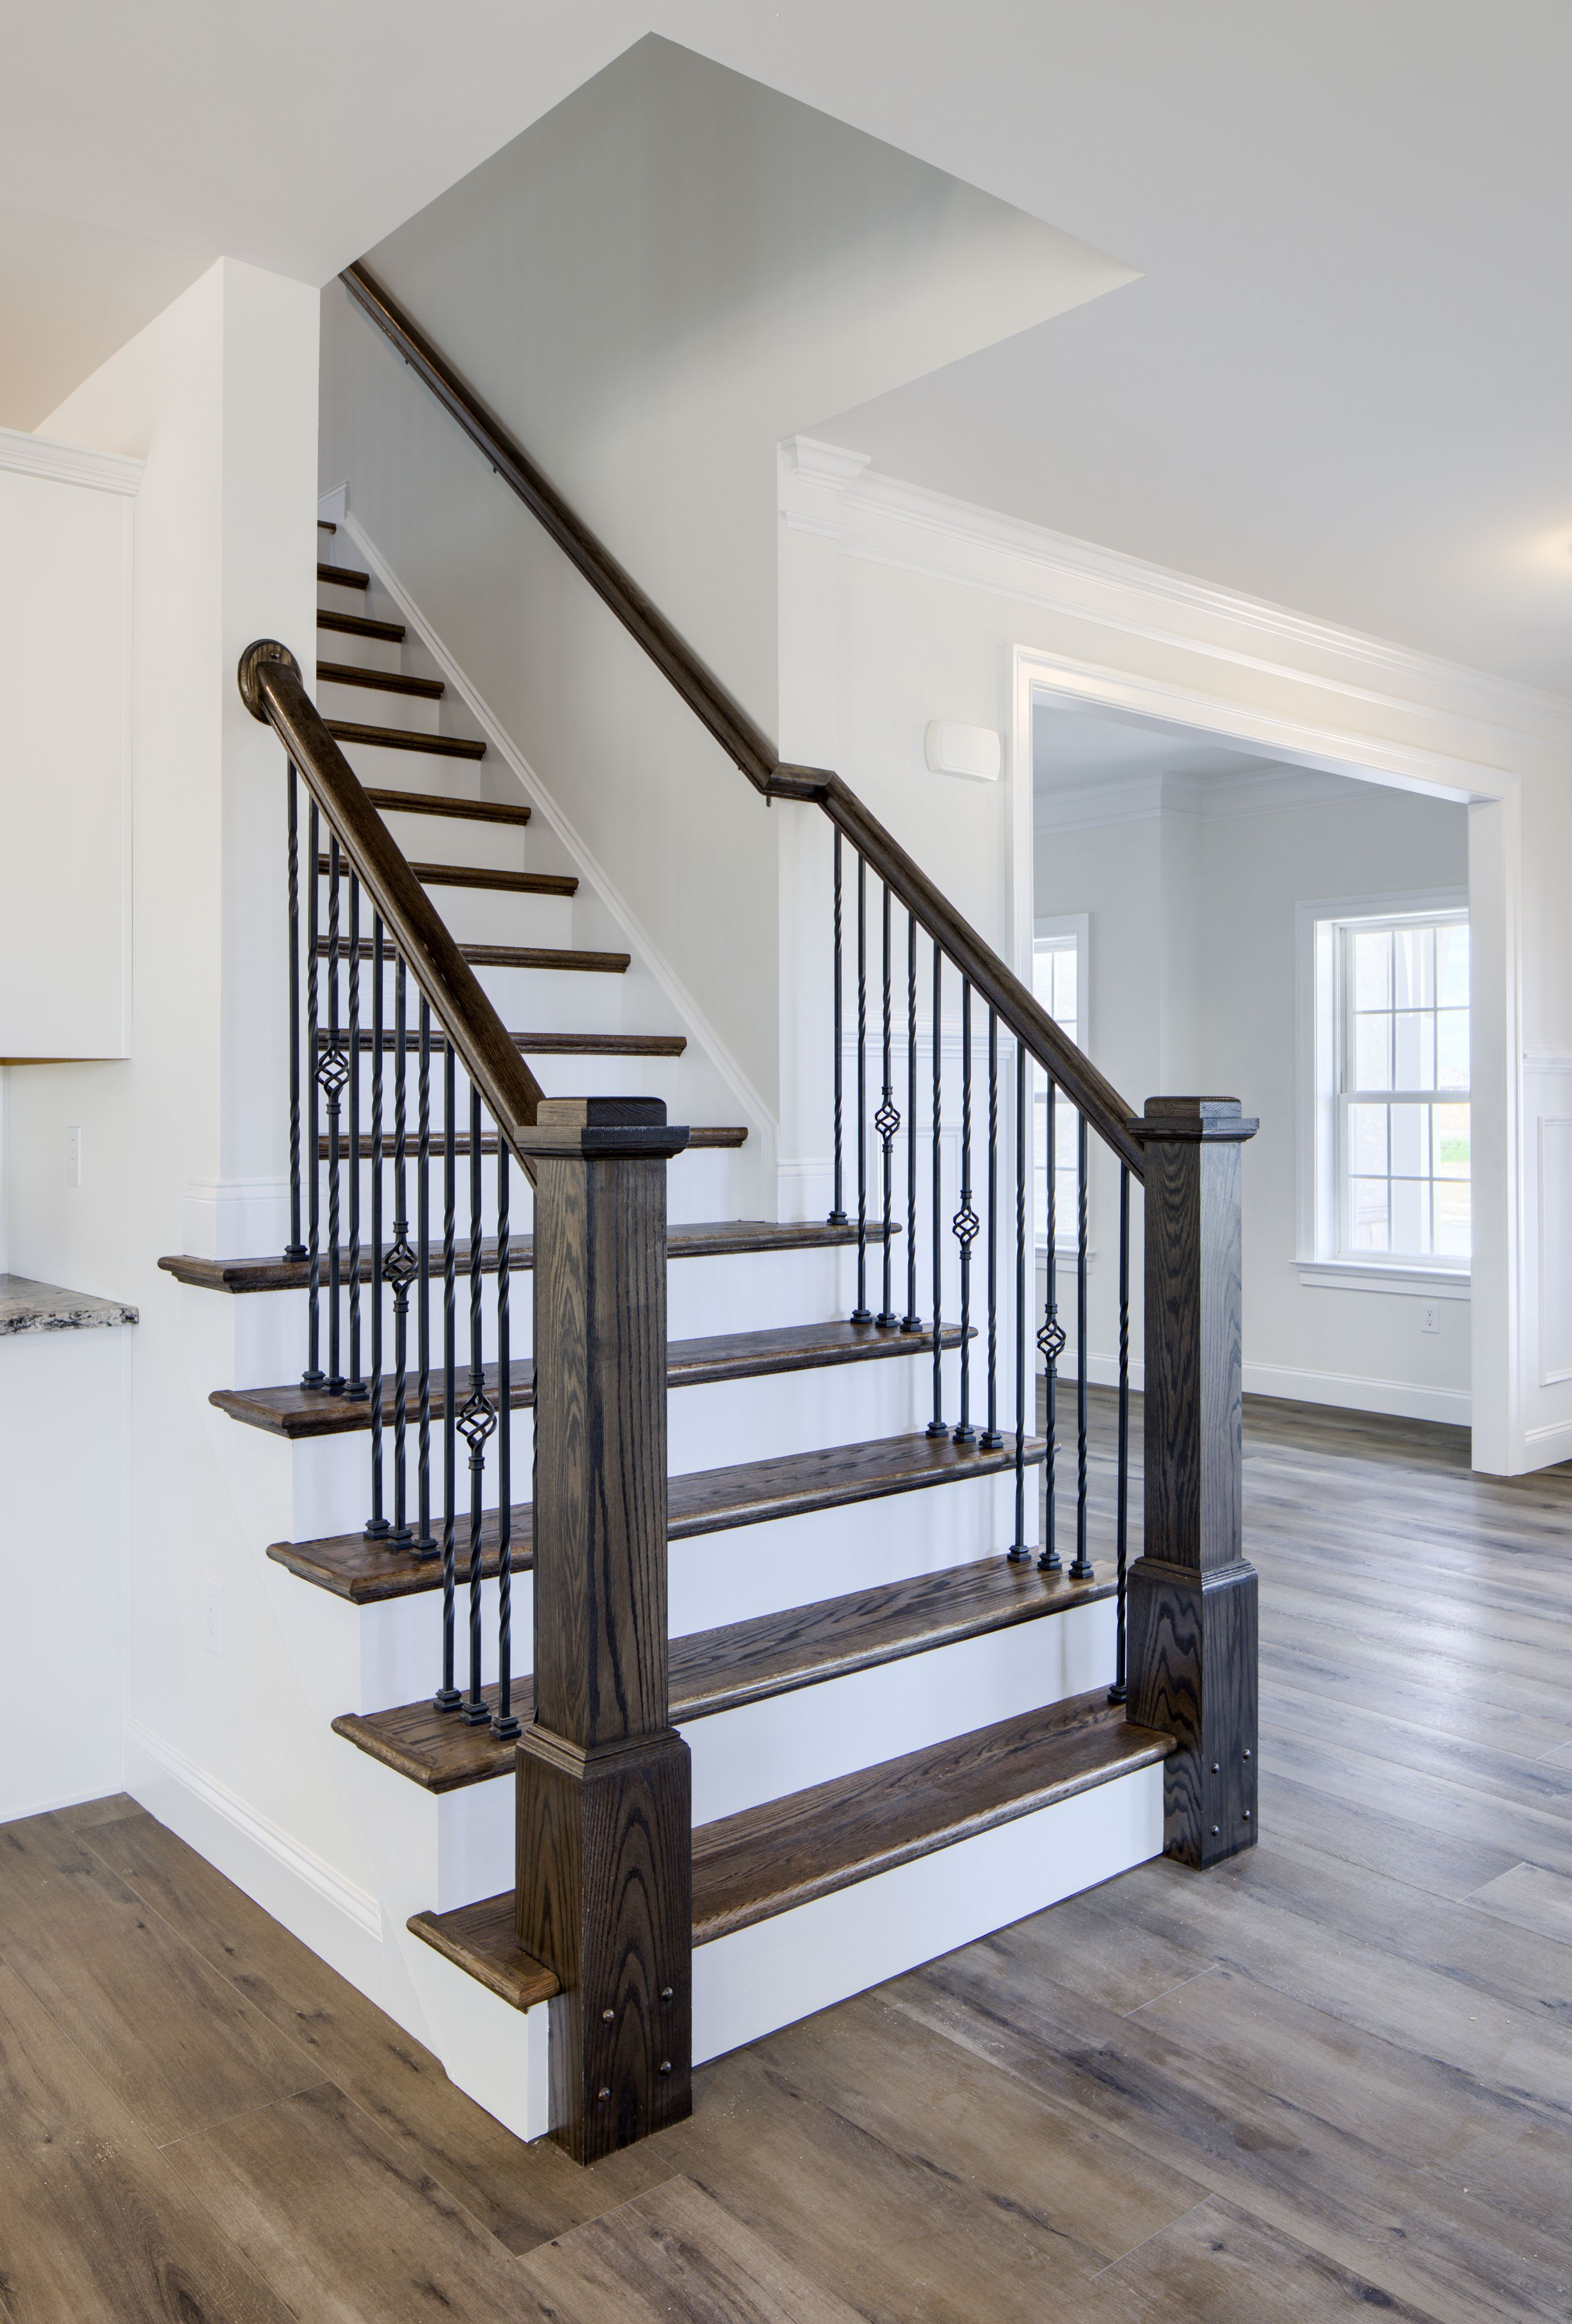 Living Area featured in the Augusta Farmhouse By Keystone Custom Homes in Baltimore, MD